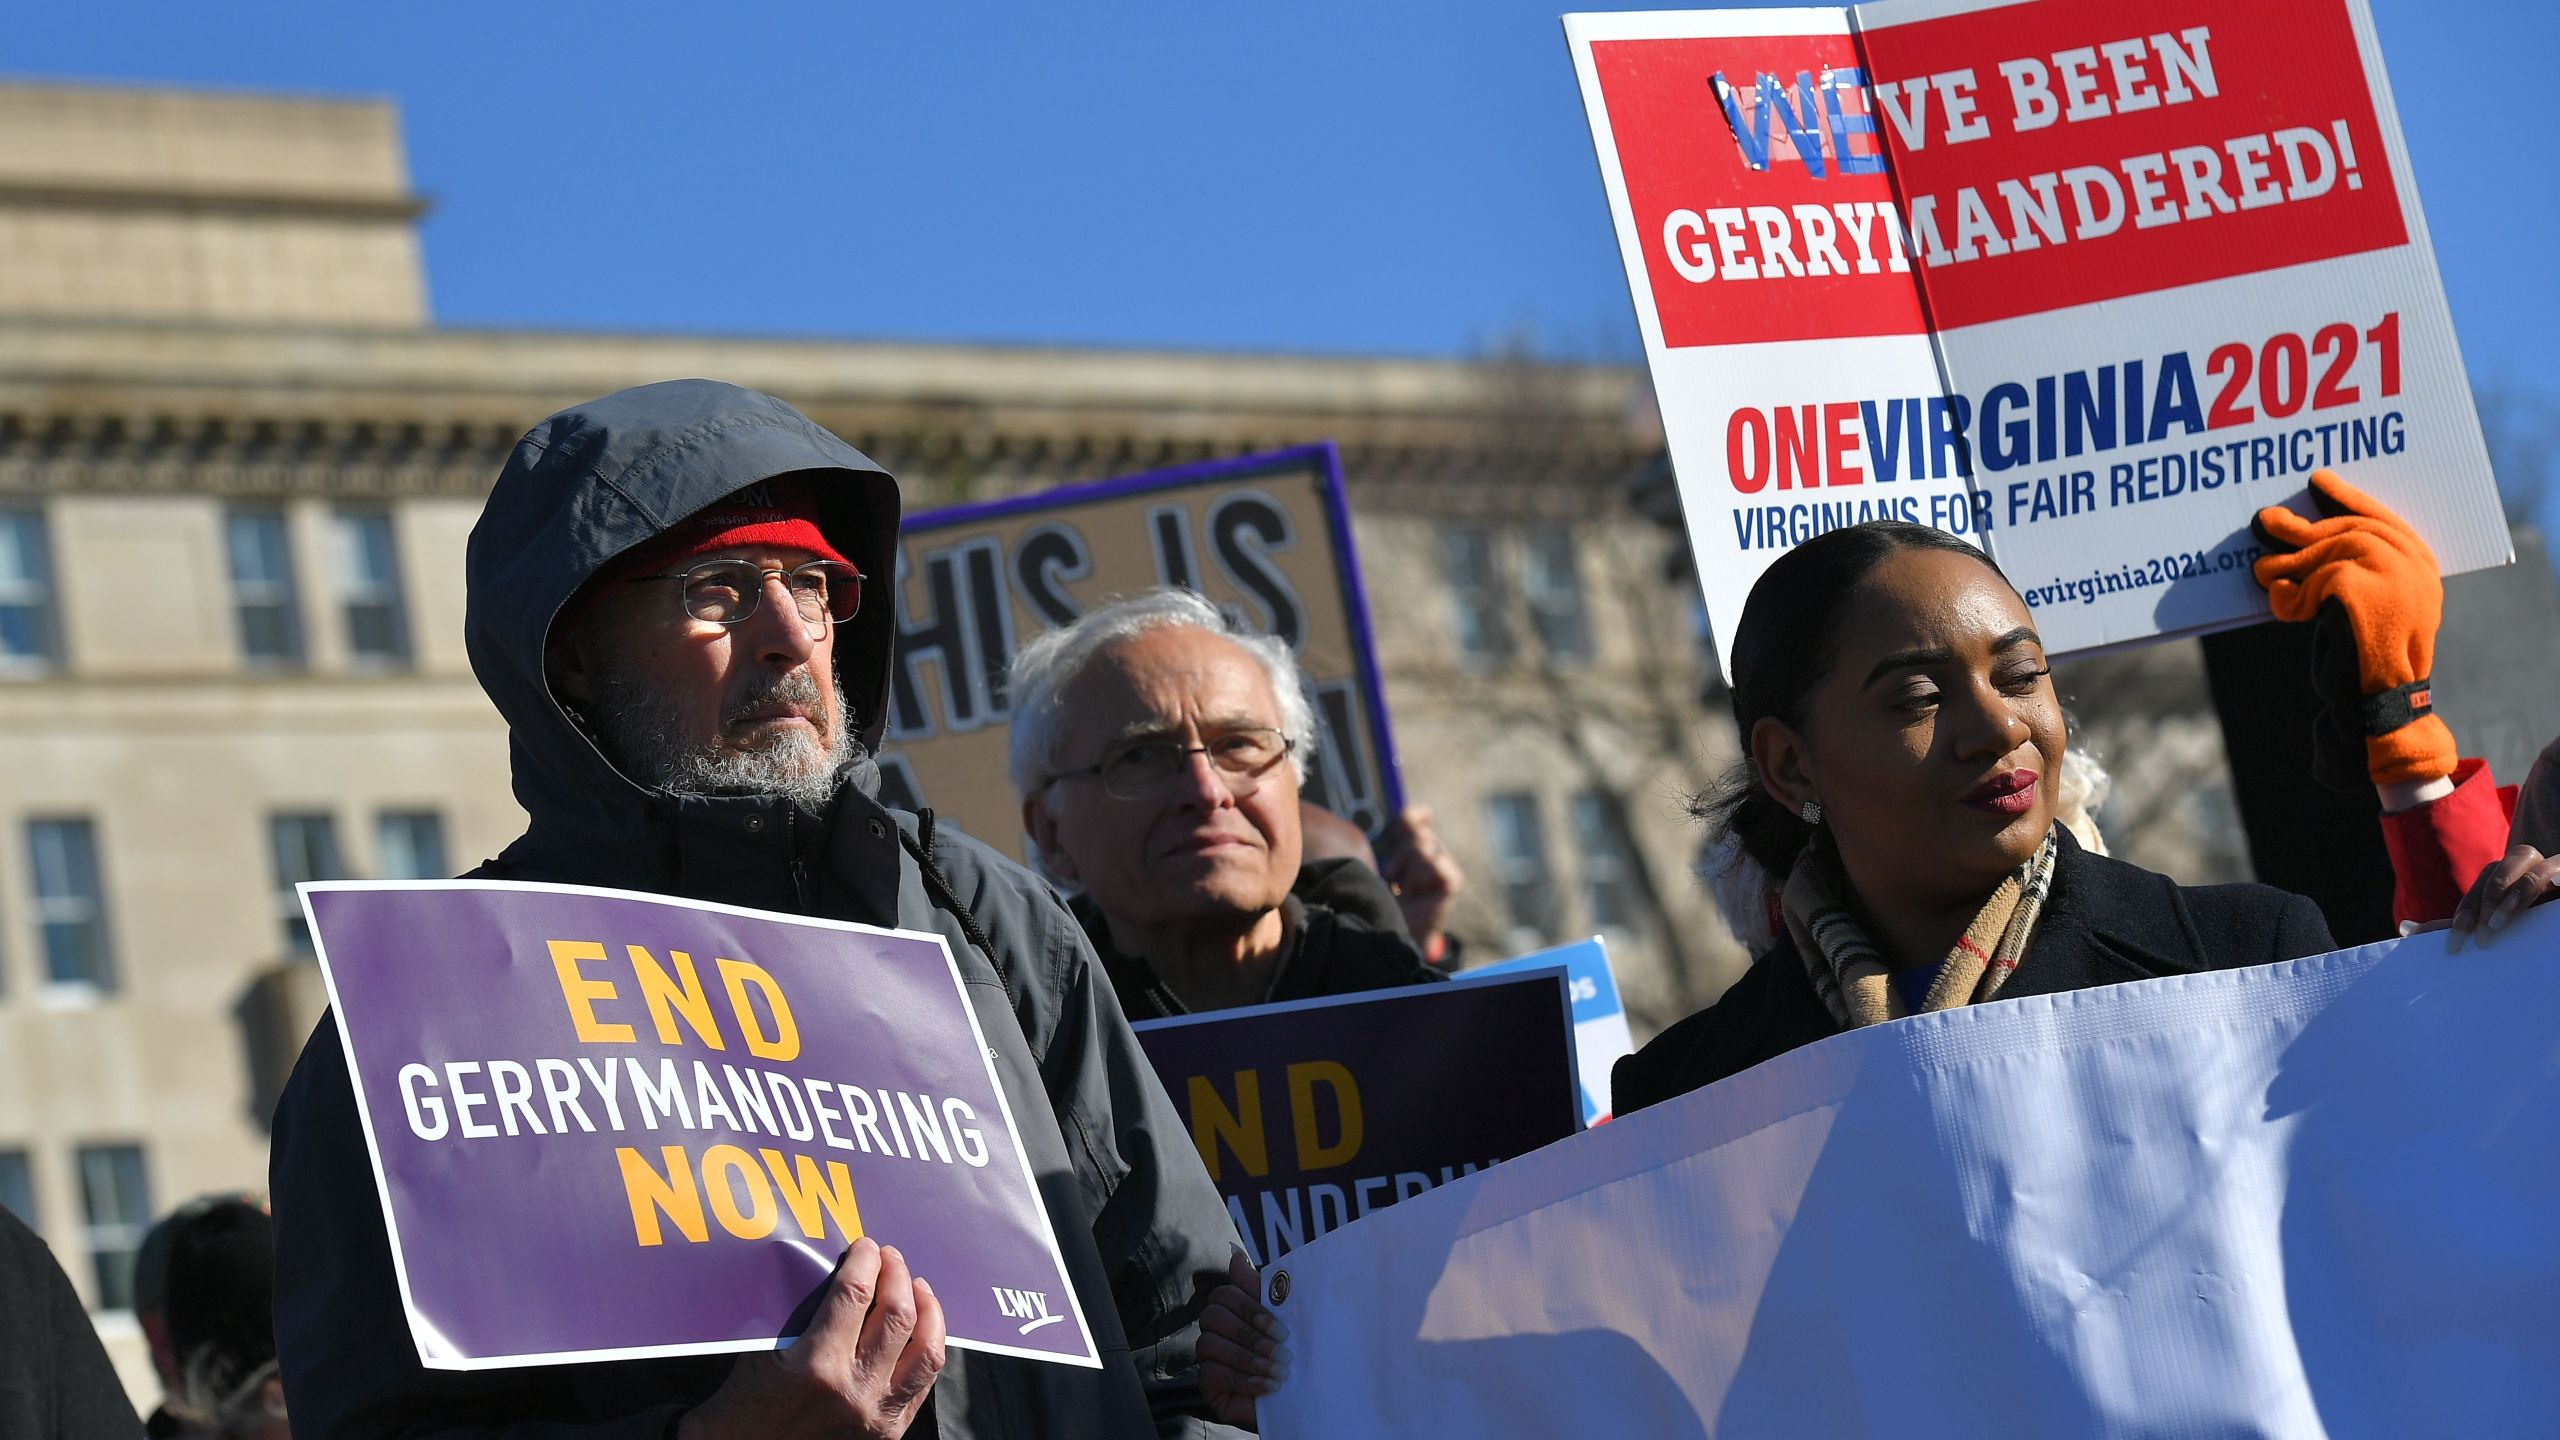 People gather during a rally to coincide with the Supreme Court hearings on the redistricting cases in Maryland and North Carolina, in front of the US Supreme Court in Washington, DC on March 26, 2019. (Credit: MANDEL NGAN/AFP/Getty Images)